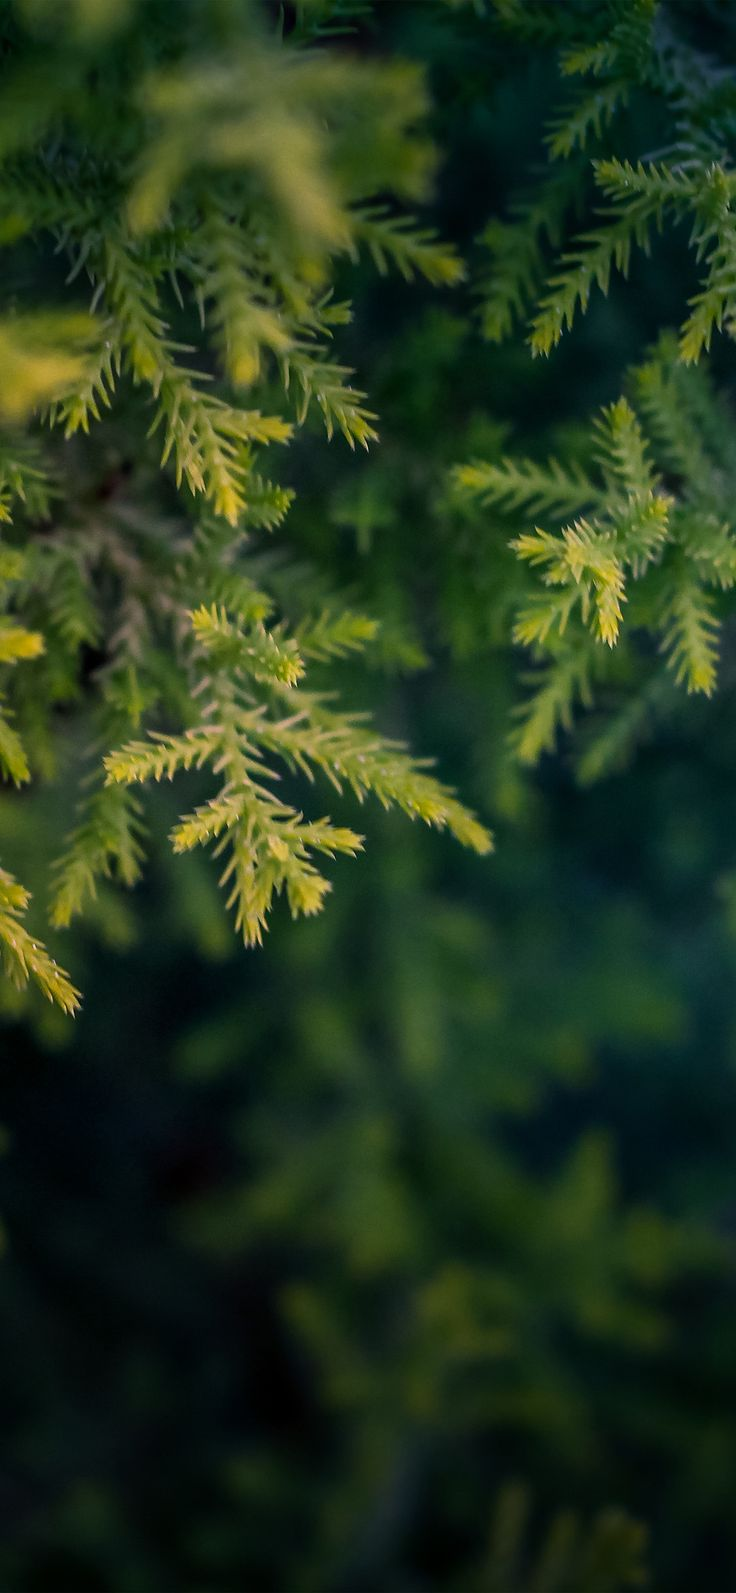 nv71-tree-leaf-bokeh-green-nature via http://iPhoneXpapers.com - Wallpapers for iPhone X